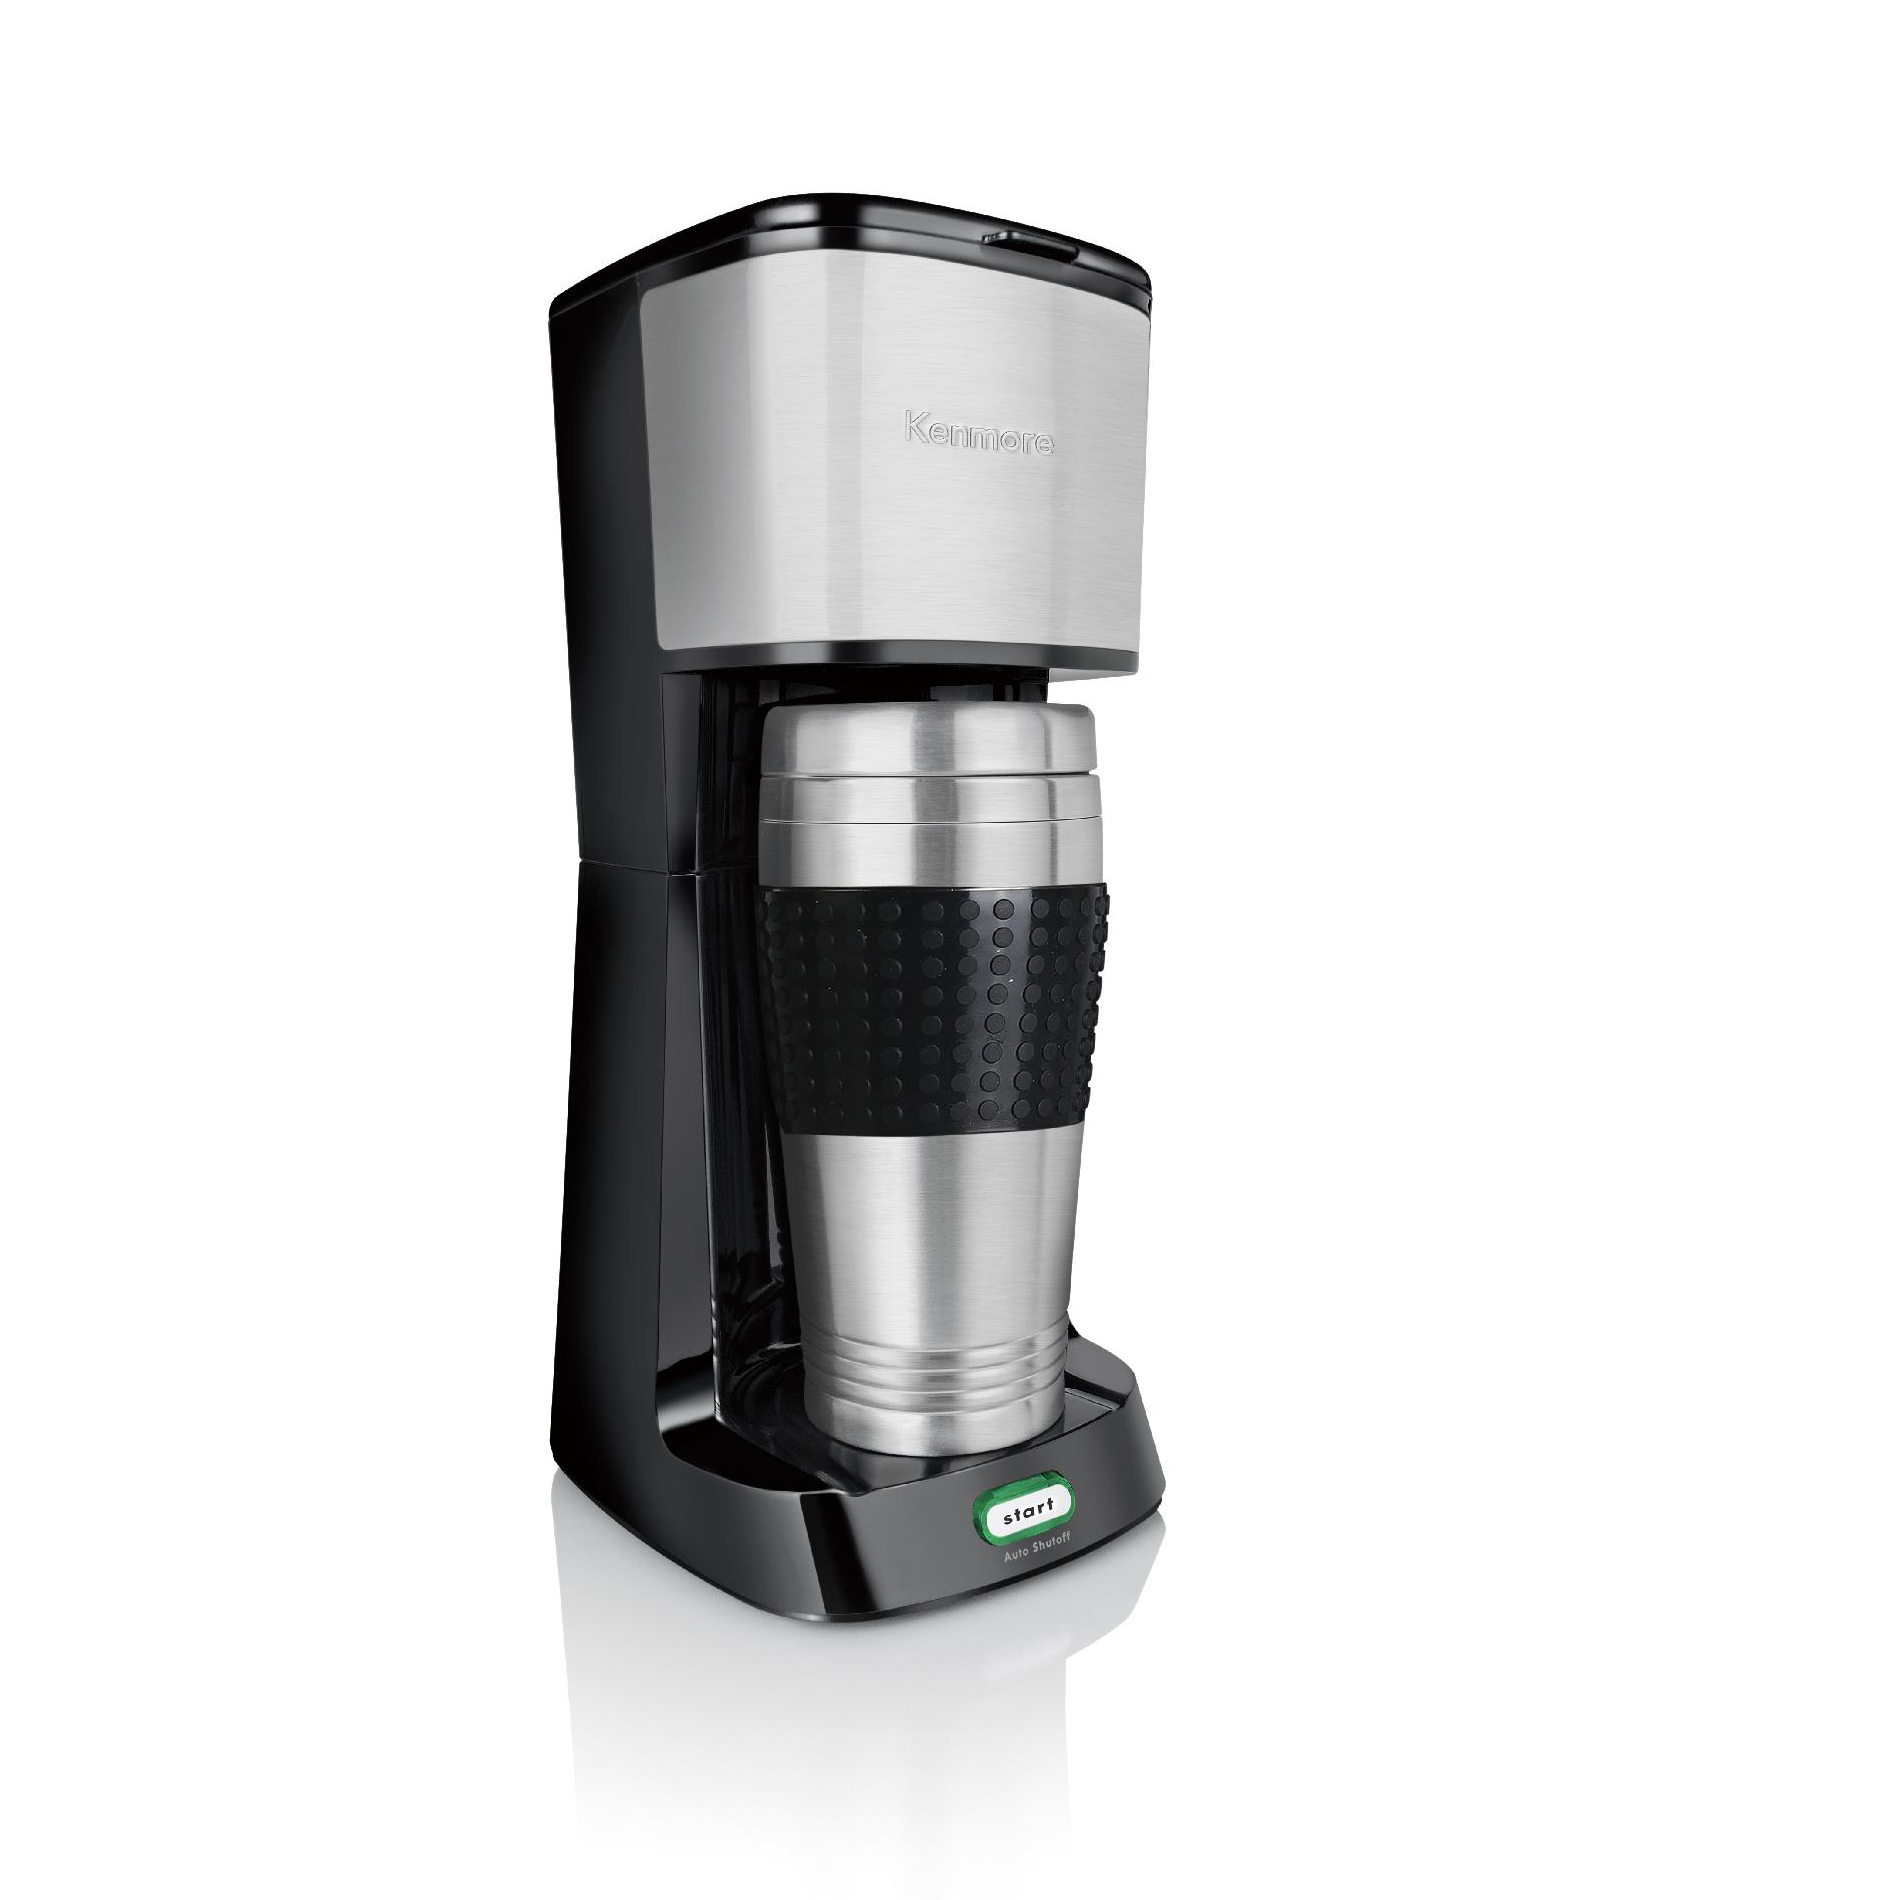 Kenmore One to Go Travel Coffee Maker